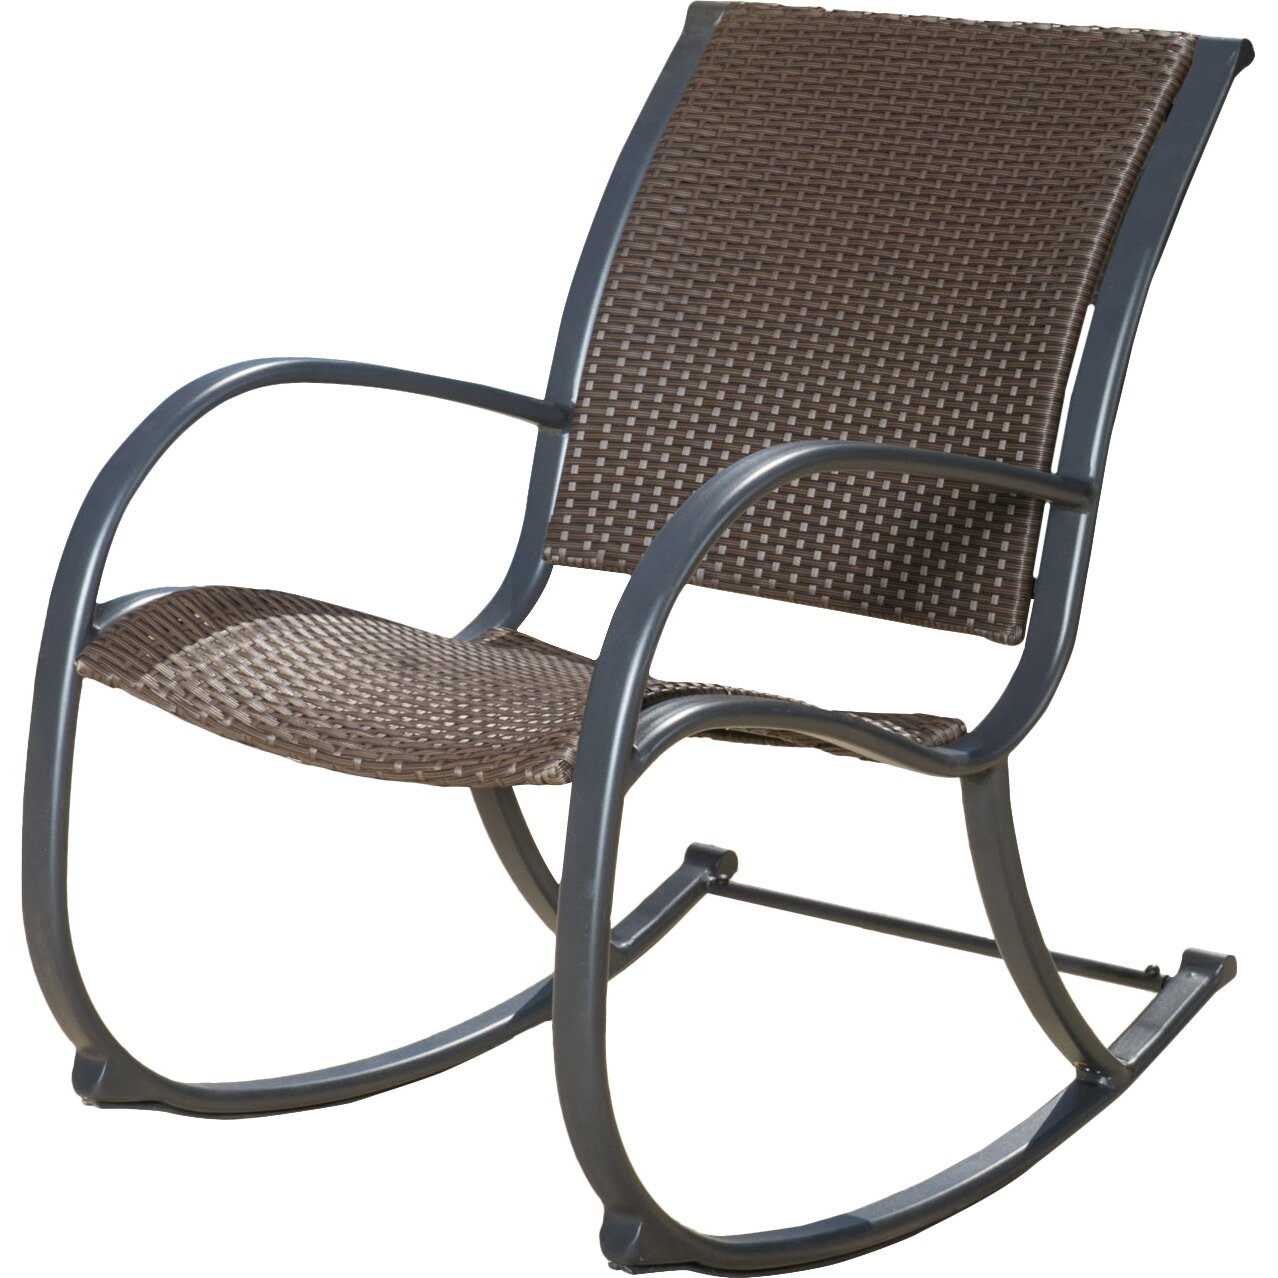 Outdoor Patio Furniture ... Wicker/Rattan Patio Rocking Chairs Home ...